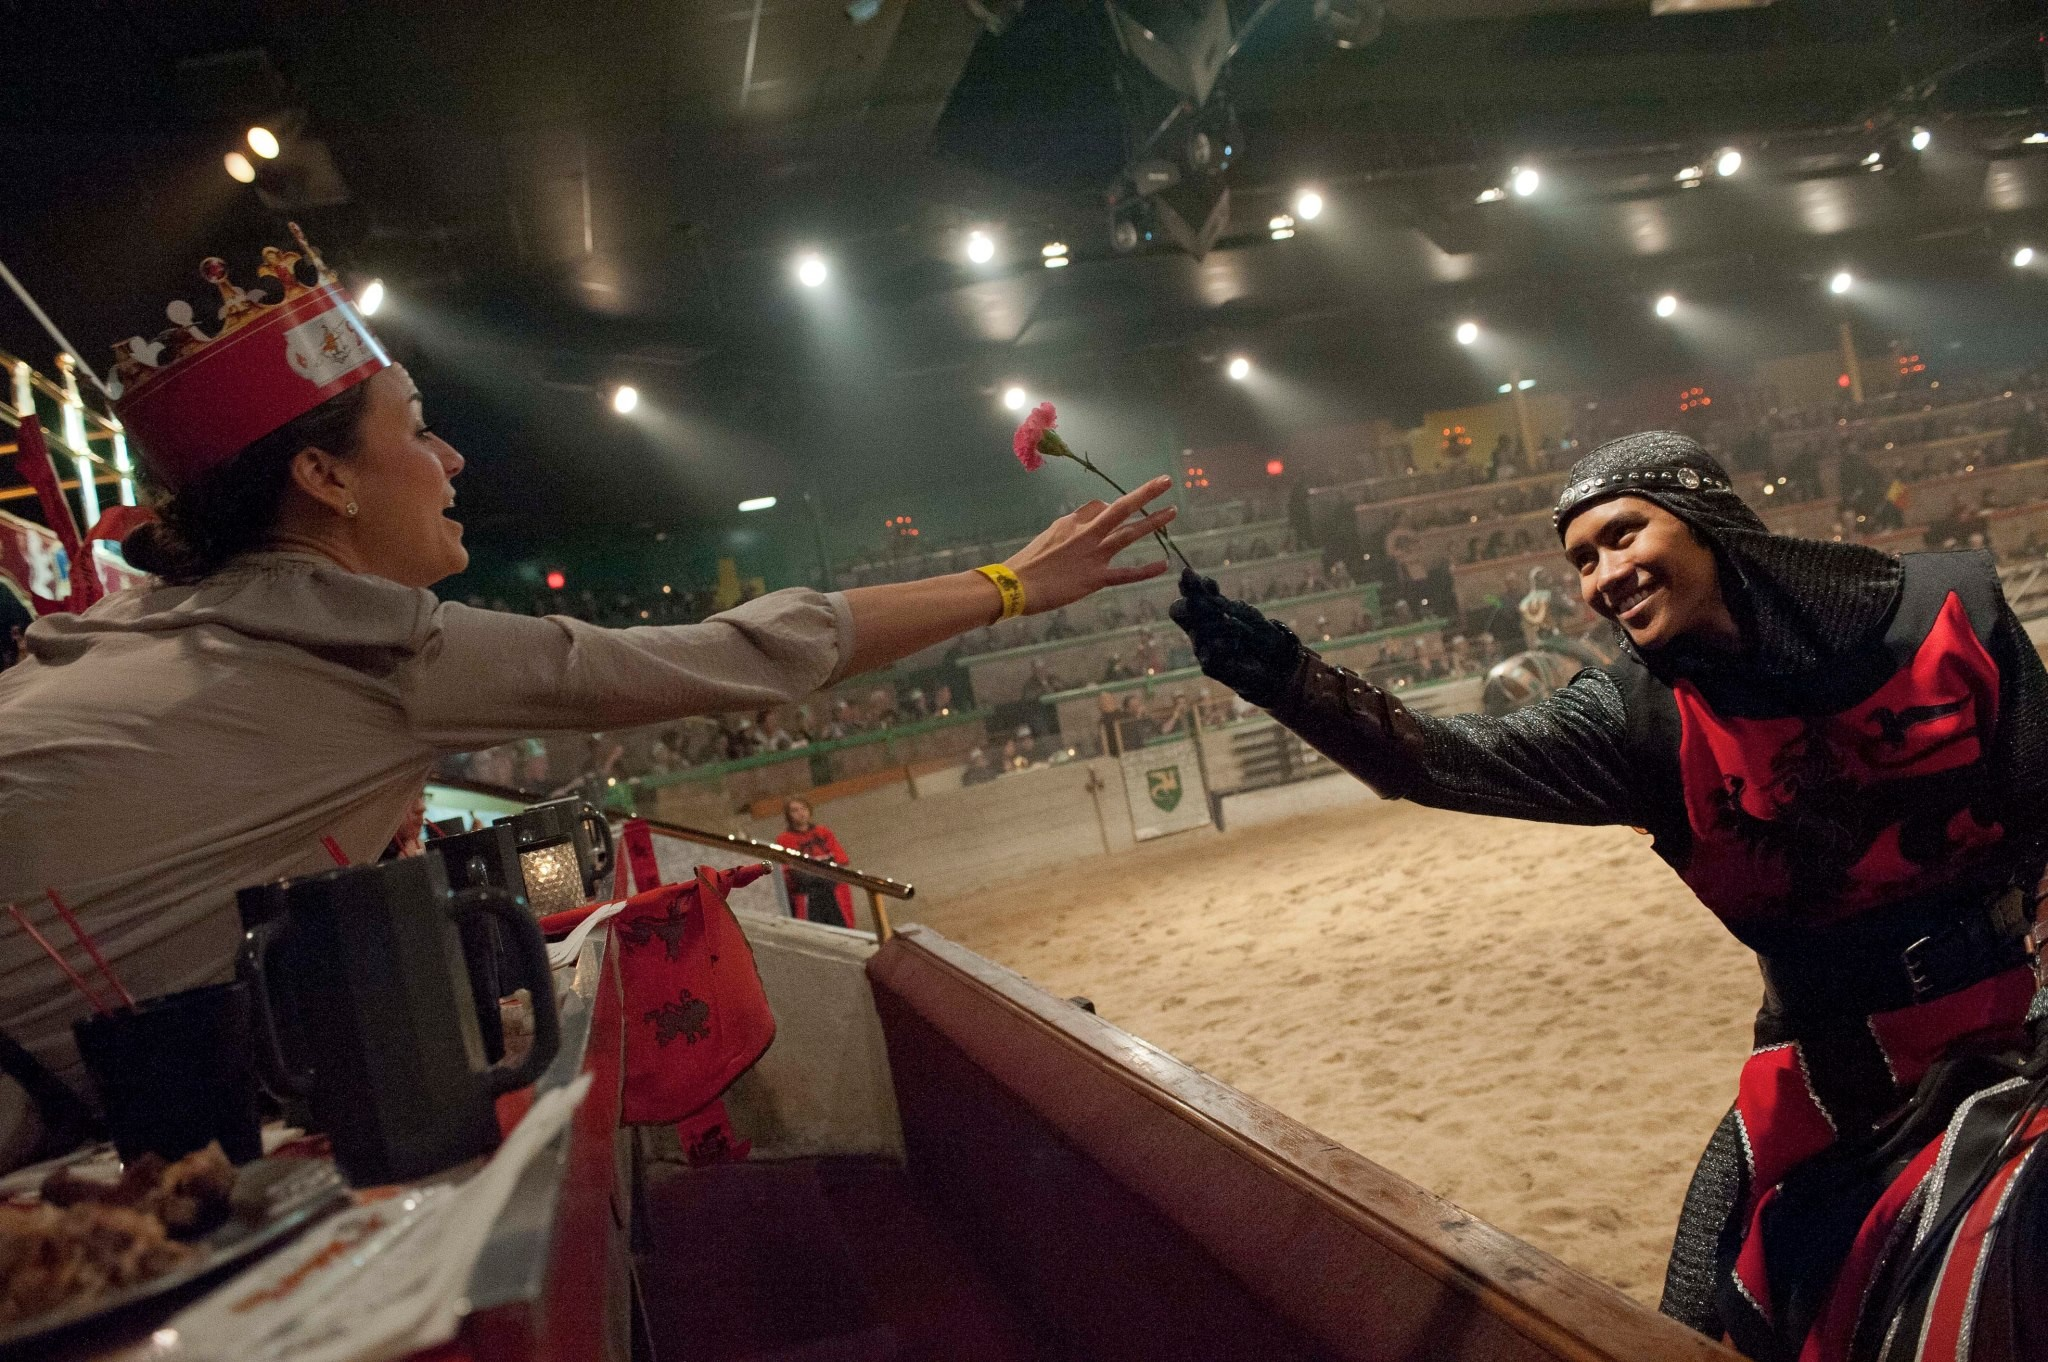 the red knight on horseback hands a carnation to a young woman sitting in the front row